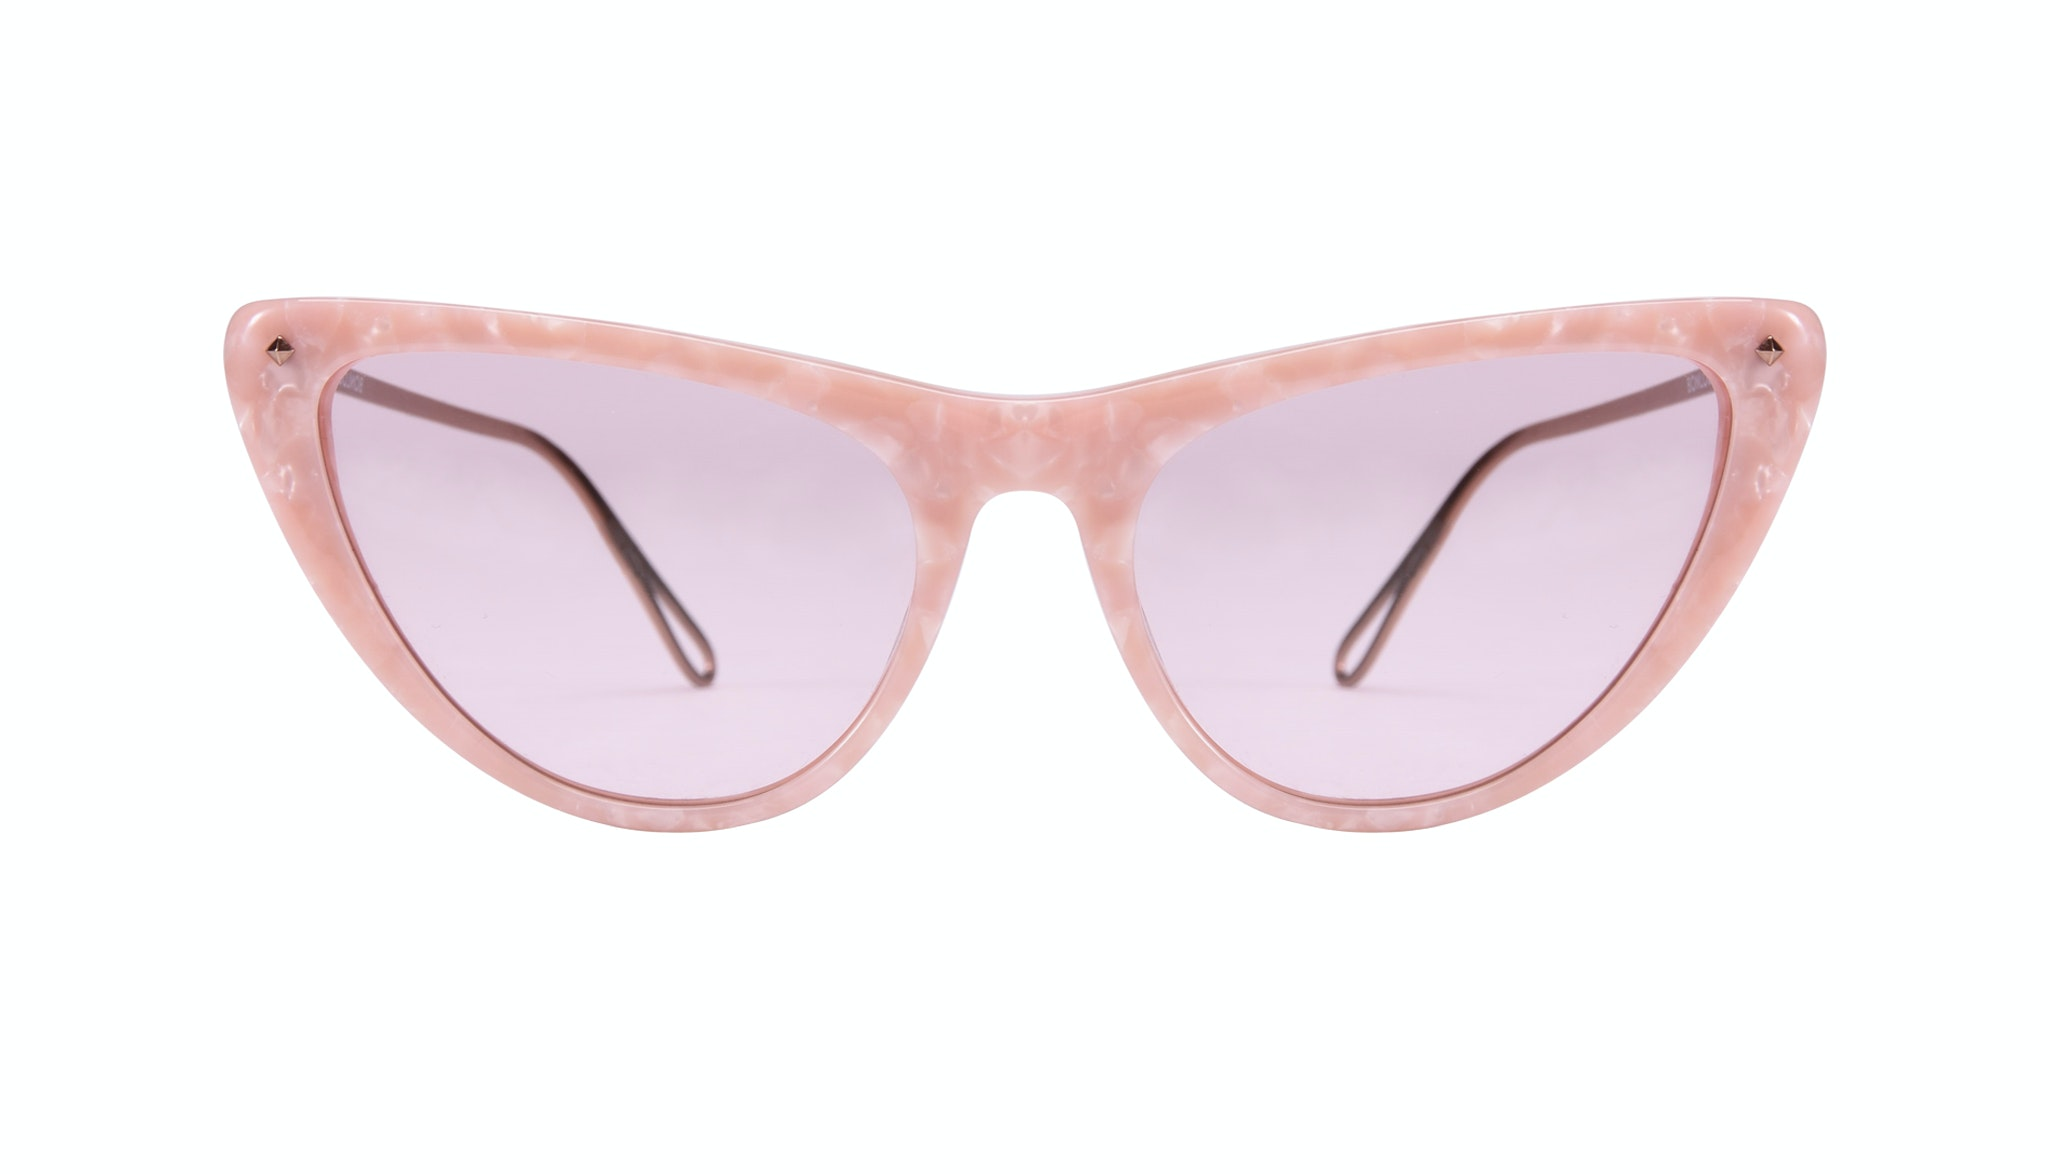 Affordable Fashion Glasses Cat Eye Sunglasses Women Celeste Rose